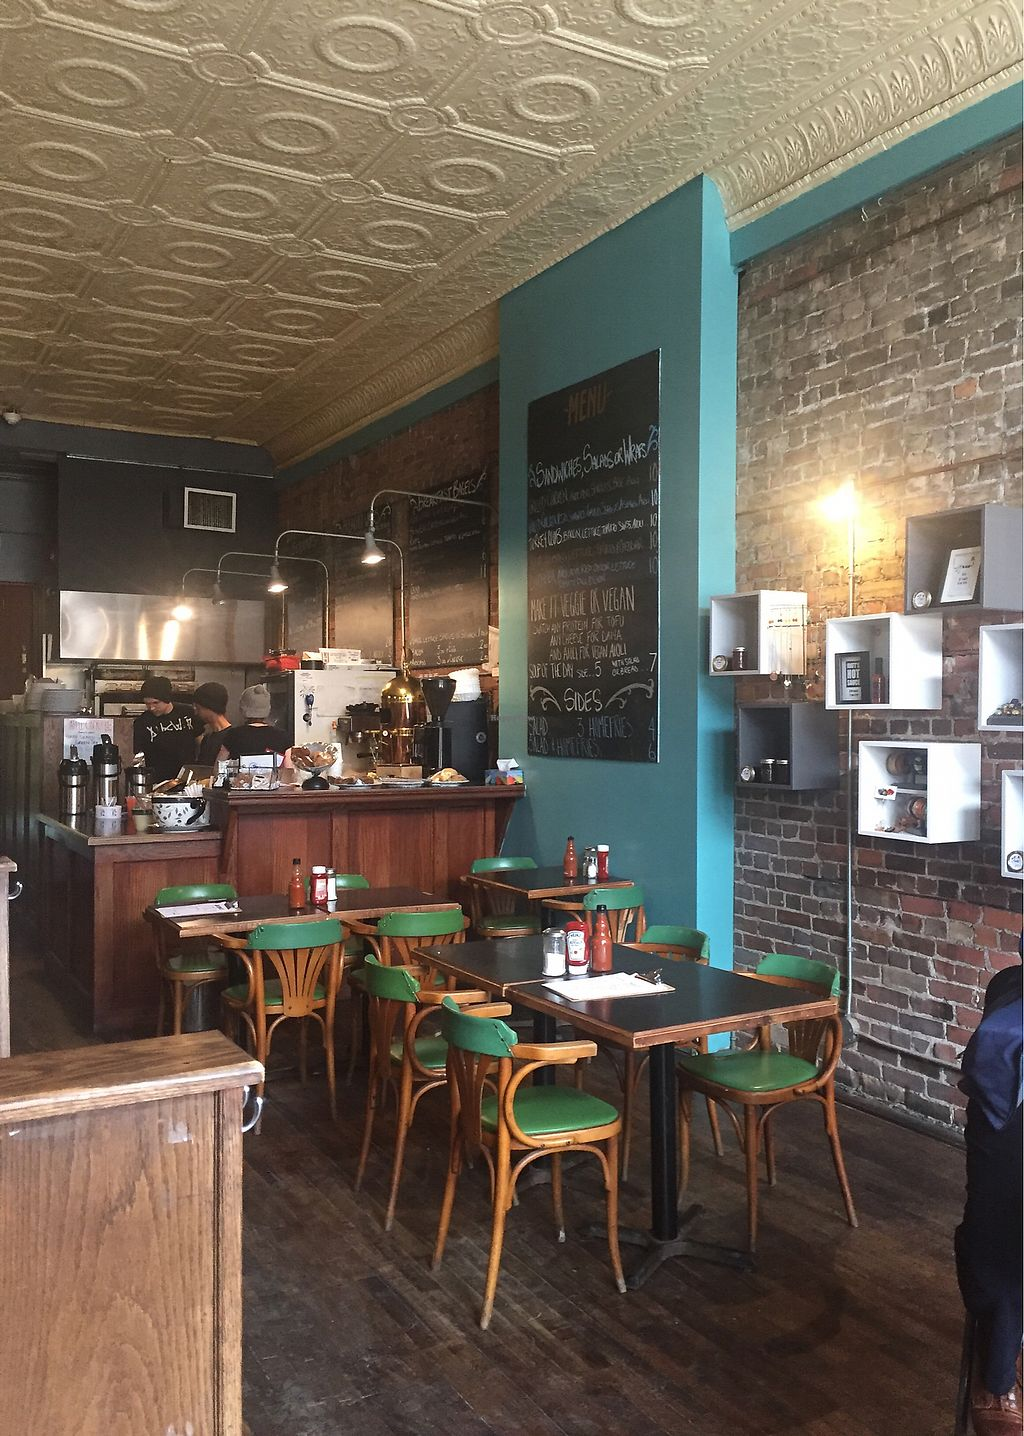 """Photo of Rustic Cosmo Cafe  by <a href=""""/members/profile/Gracem"""">Gracem</a> <br/>Rustic decor <br/> March 9, 2018  - <a href='/contact/abuse/image/113853/368624'>Report</a>"""